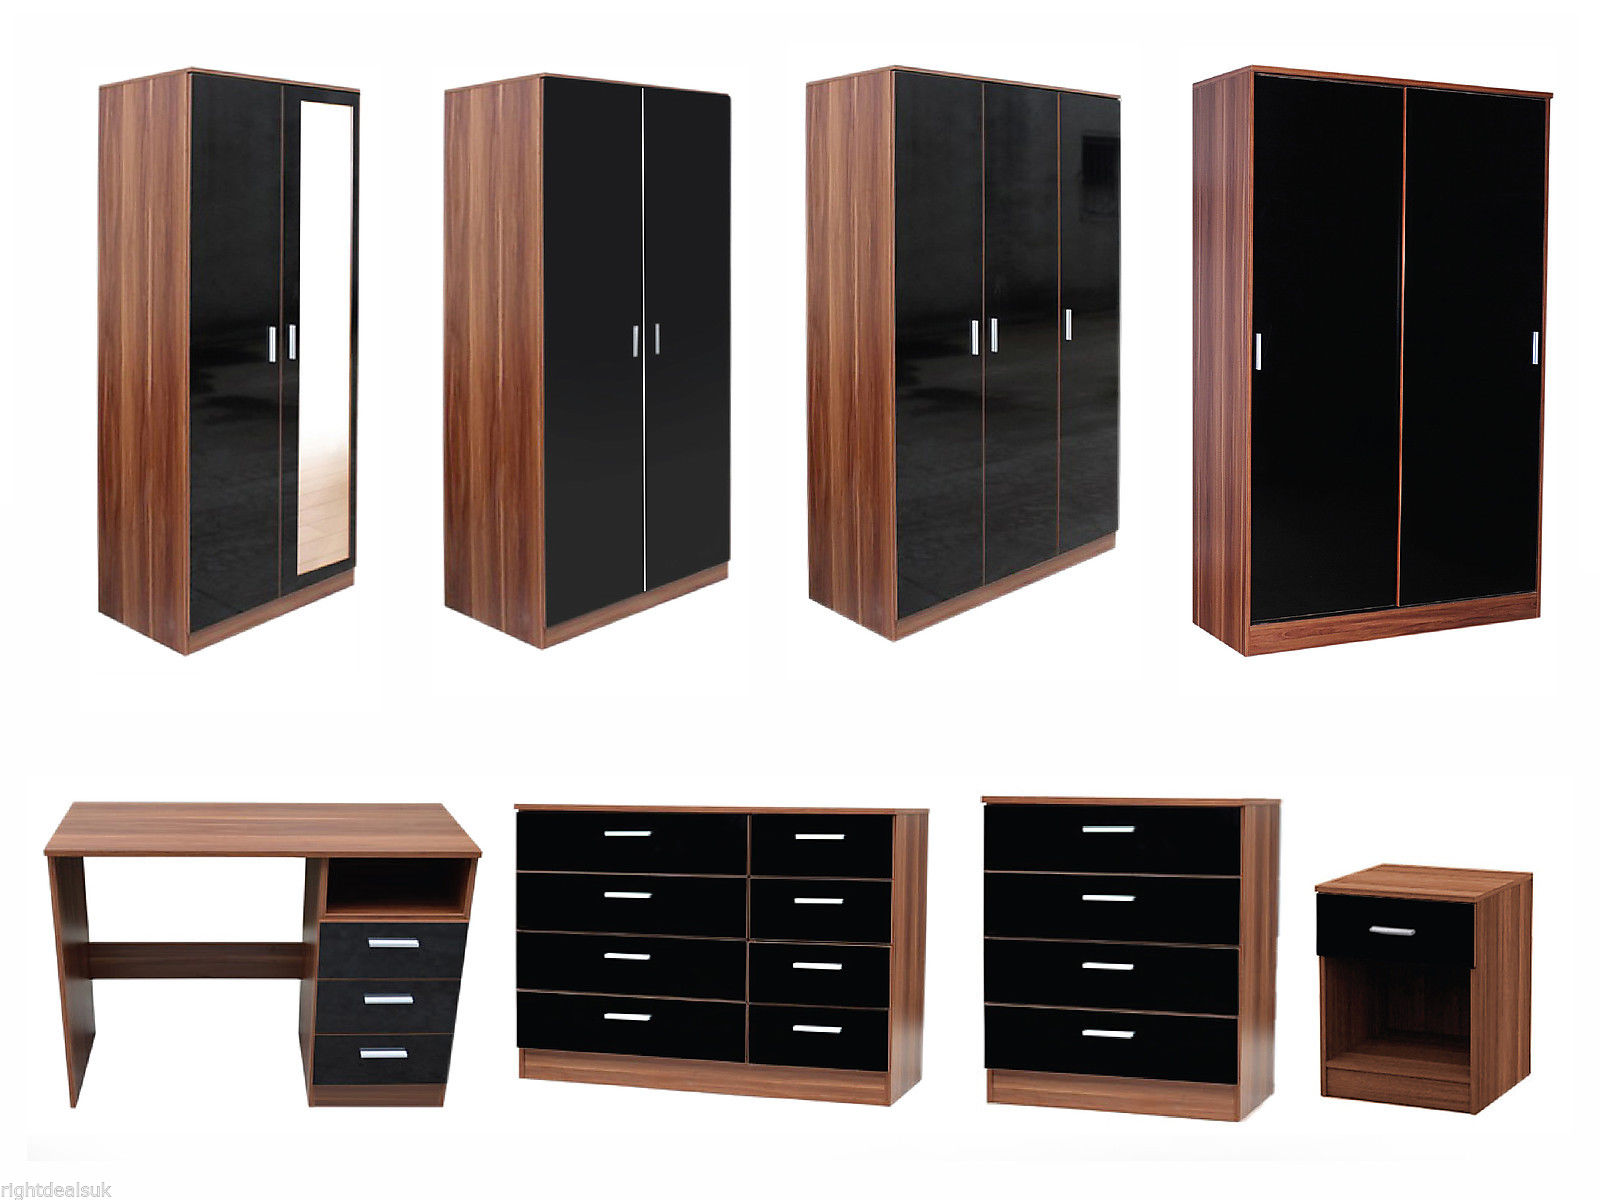 Details about new caspian high gloss black walnut bedroom furniture set full supreme range